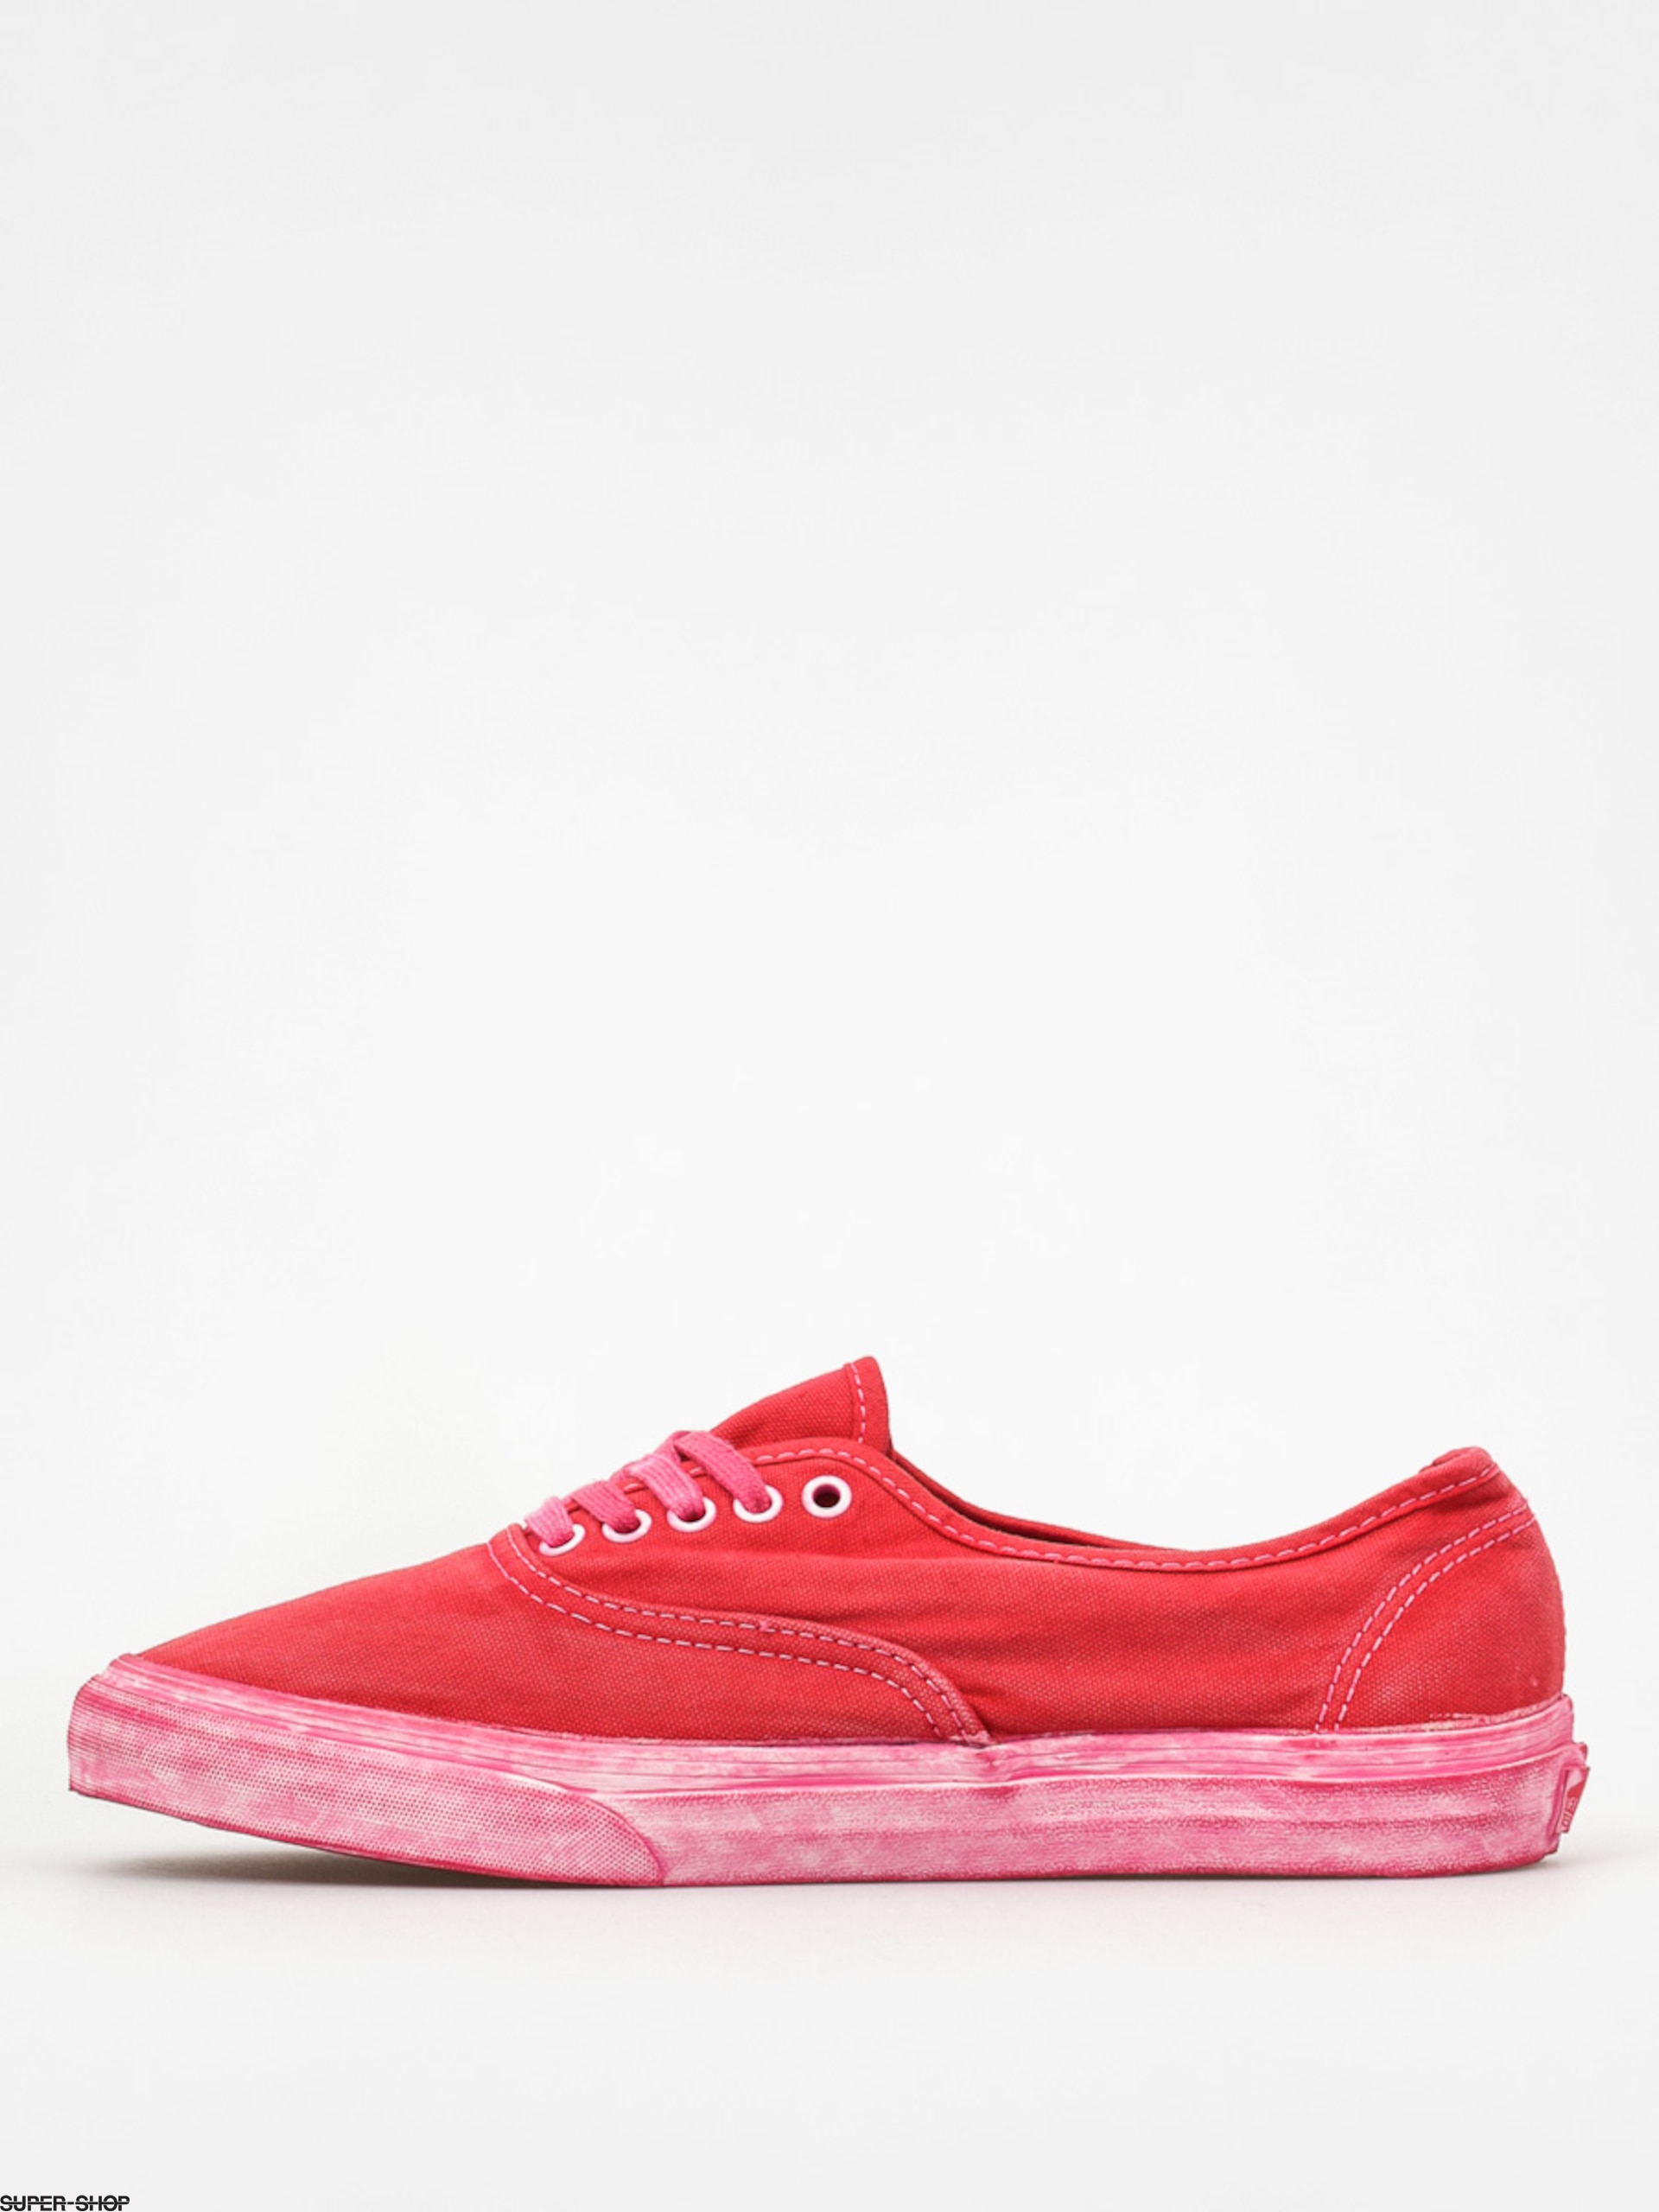 VANS Schuhe AUTHENTIC CA over washed chili pepper, Größe